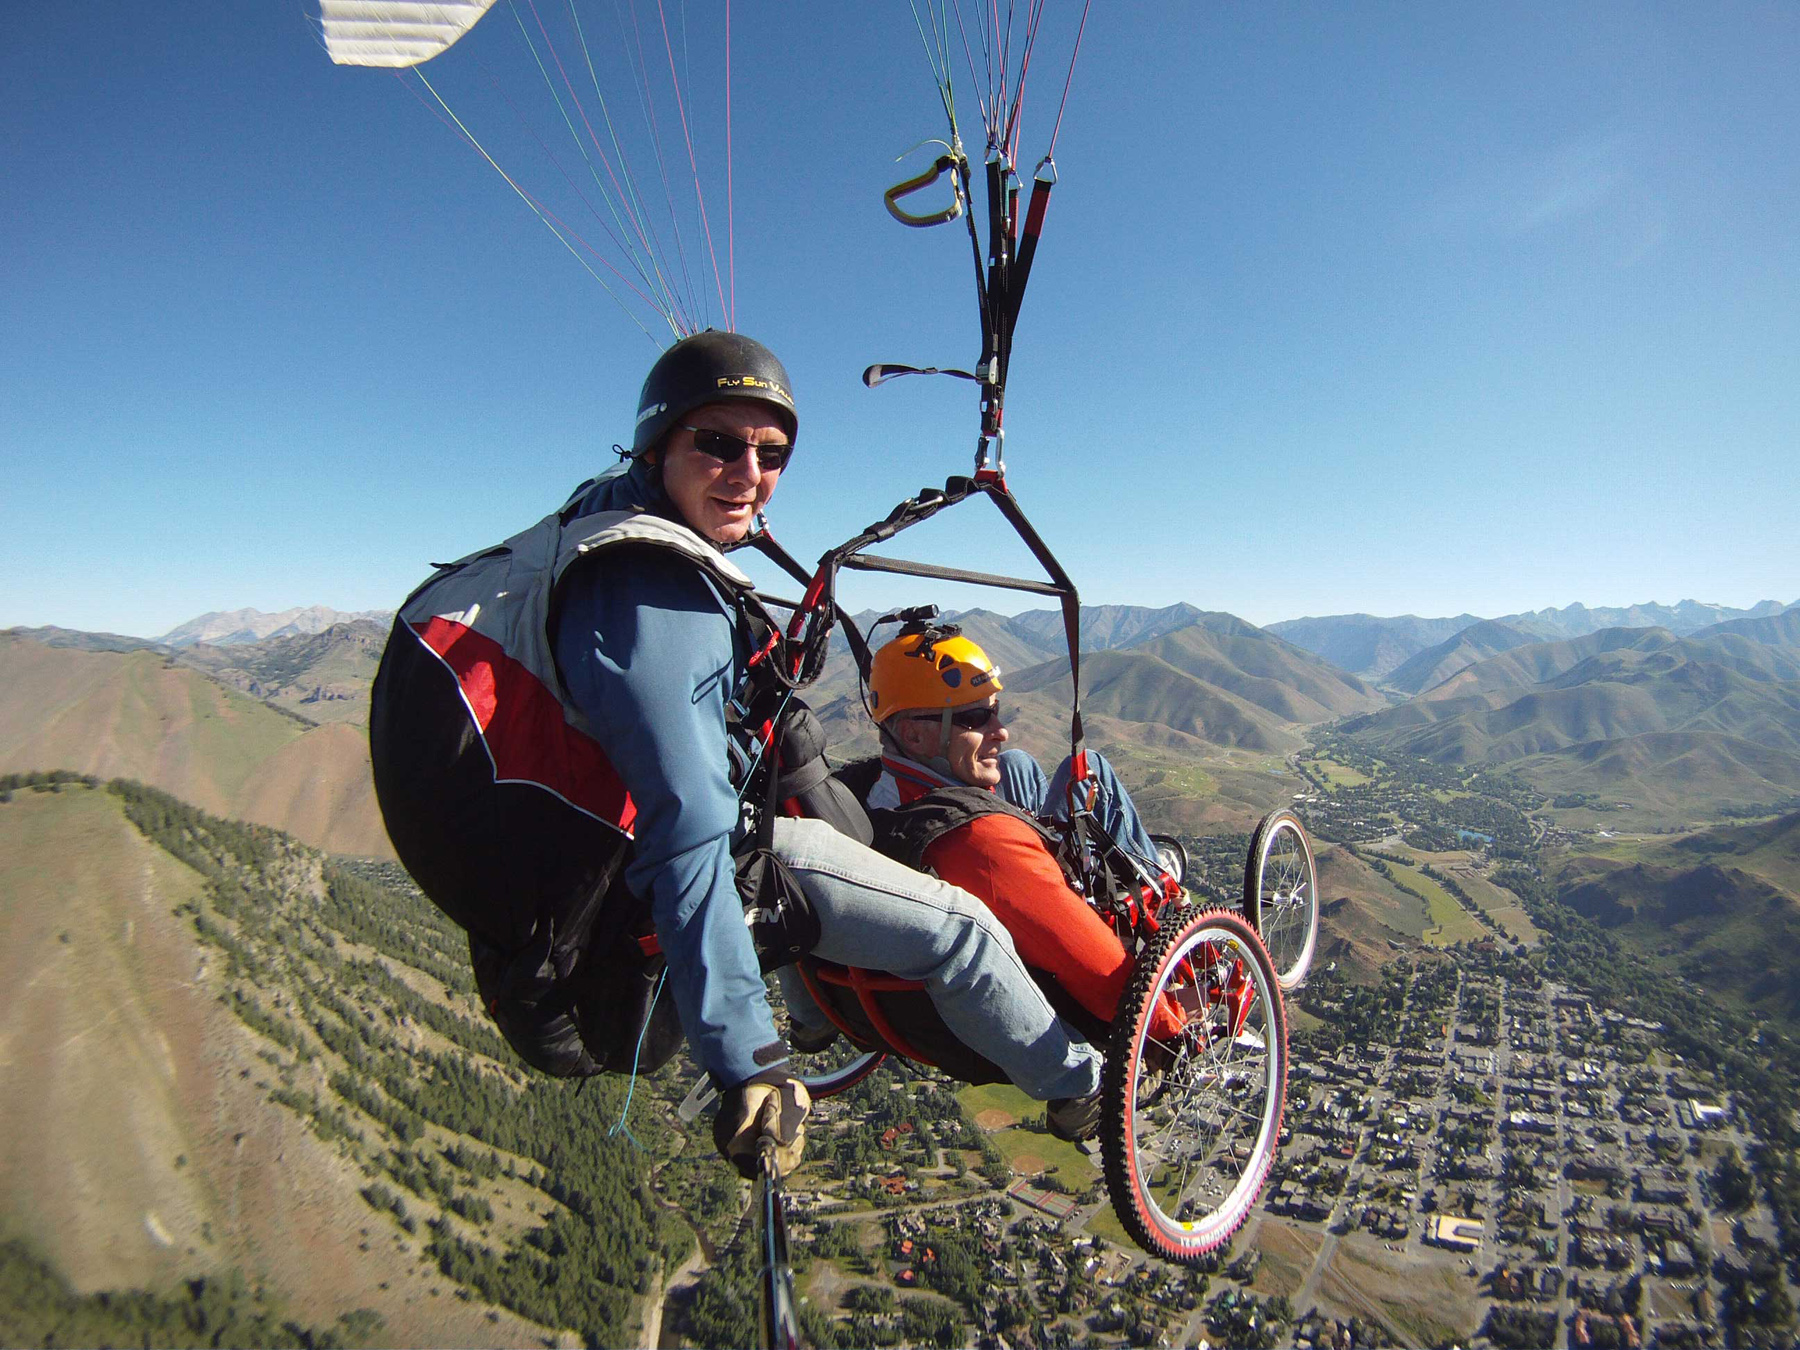 The Ergonomics and Safety Program in the Department of Mechanical Engineering at the University of Utah developed a paraglider than can be used by parapalegics.